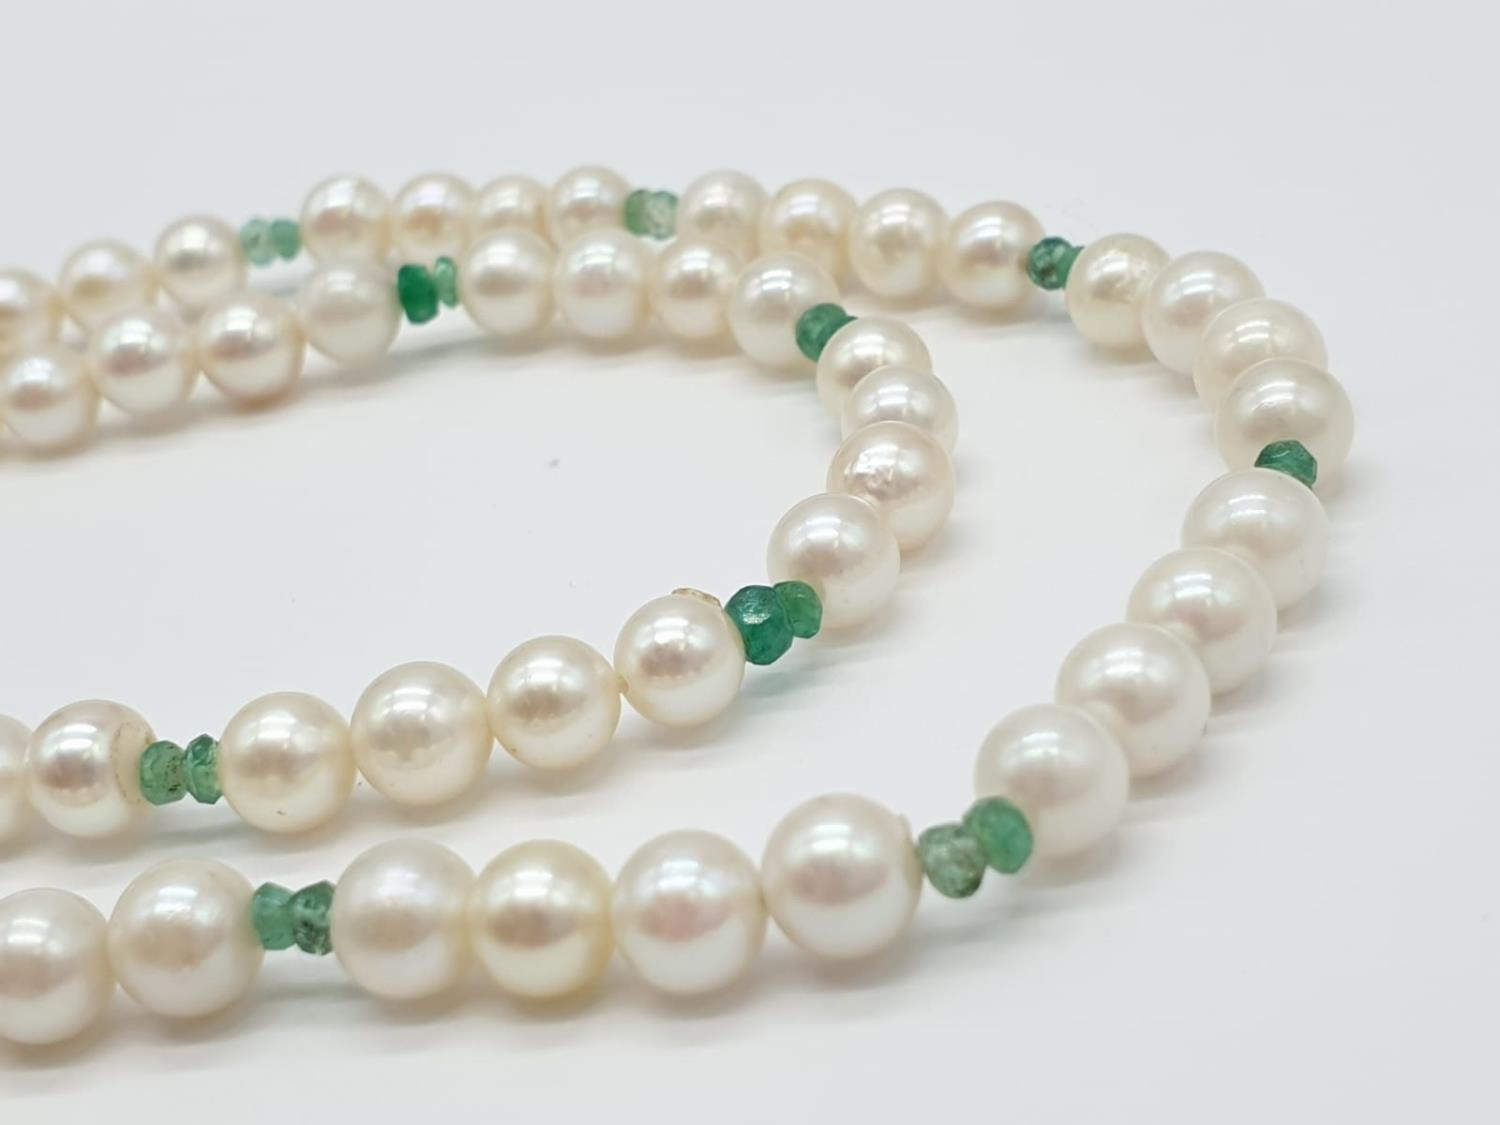 Cultured Pearl and Emerald NECKLACE with 9ct Gold Clasp. 16.3g 40cm - Image 3 of 5